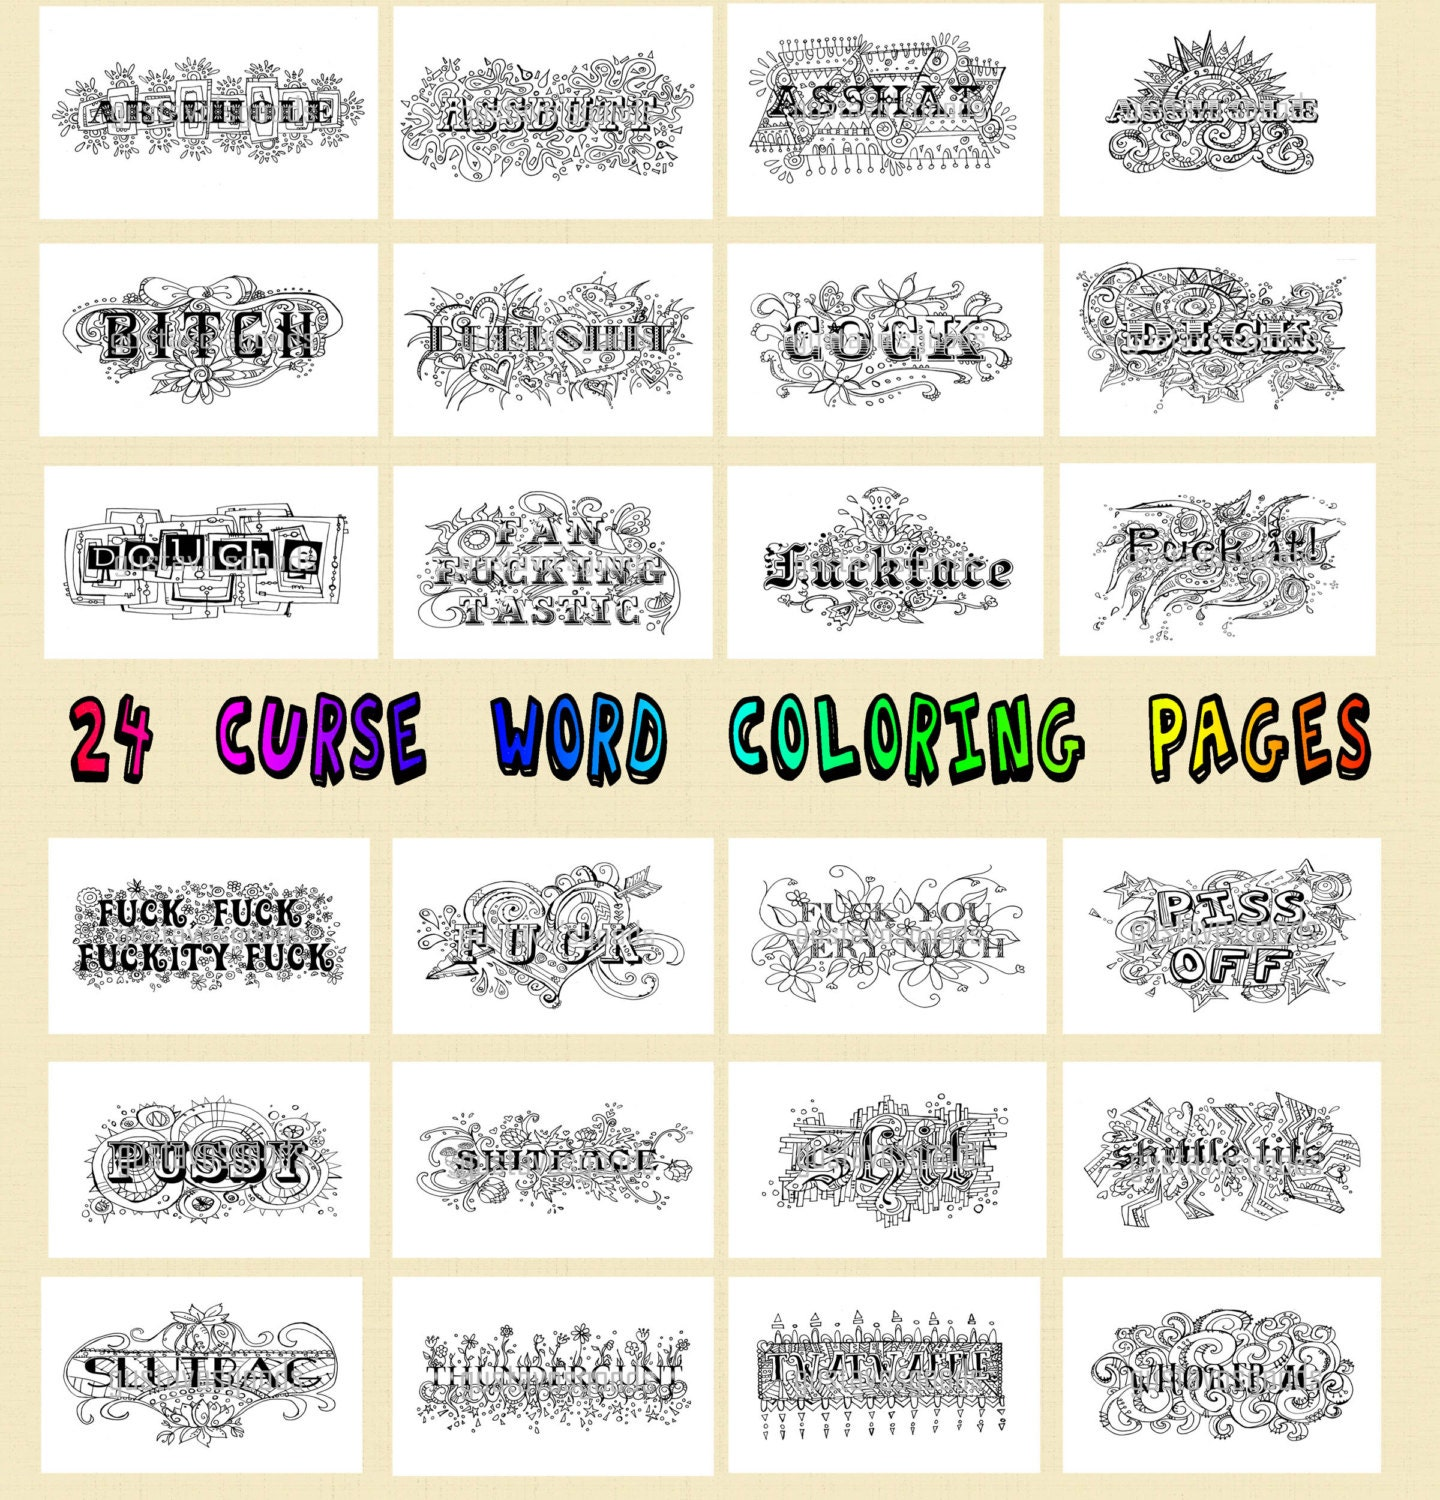 Free printable coloring pages with words - Swear Word Coloring Book 24 Pages Swear Coloring Pdf Jpeg Curse Word Coloring Curse Coloring Book